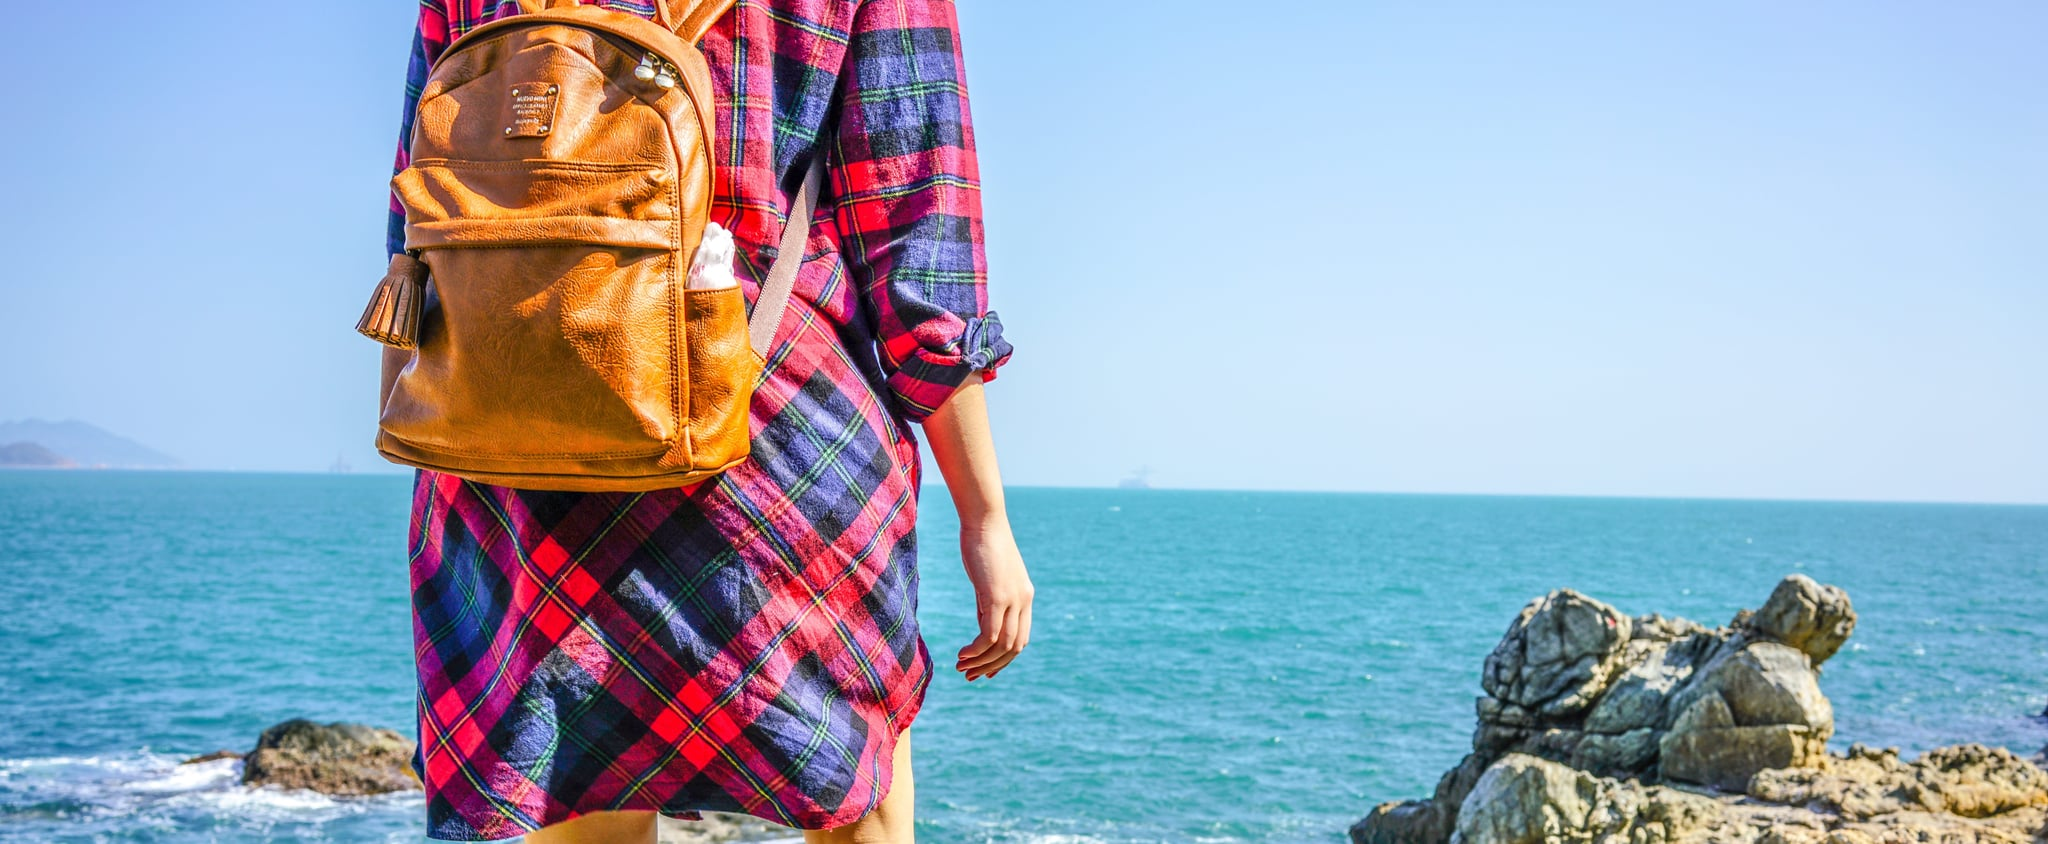 Best Solo Vacation Spots For Moms